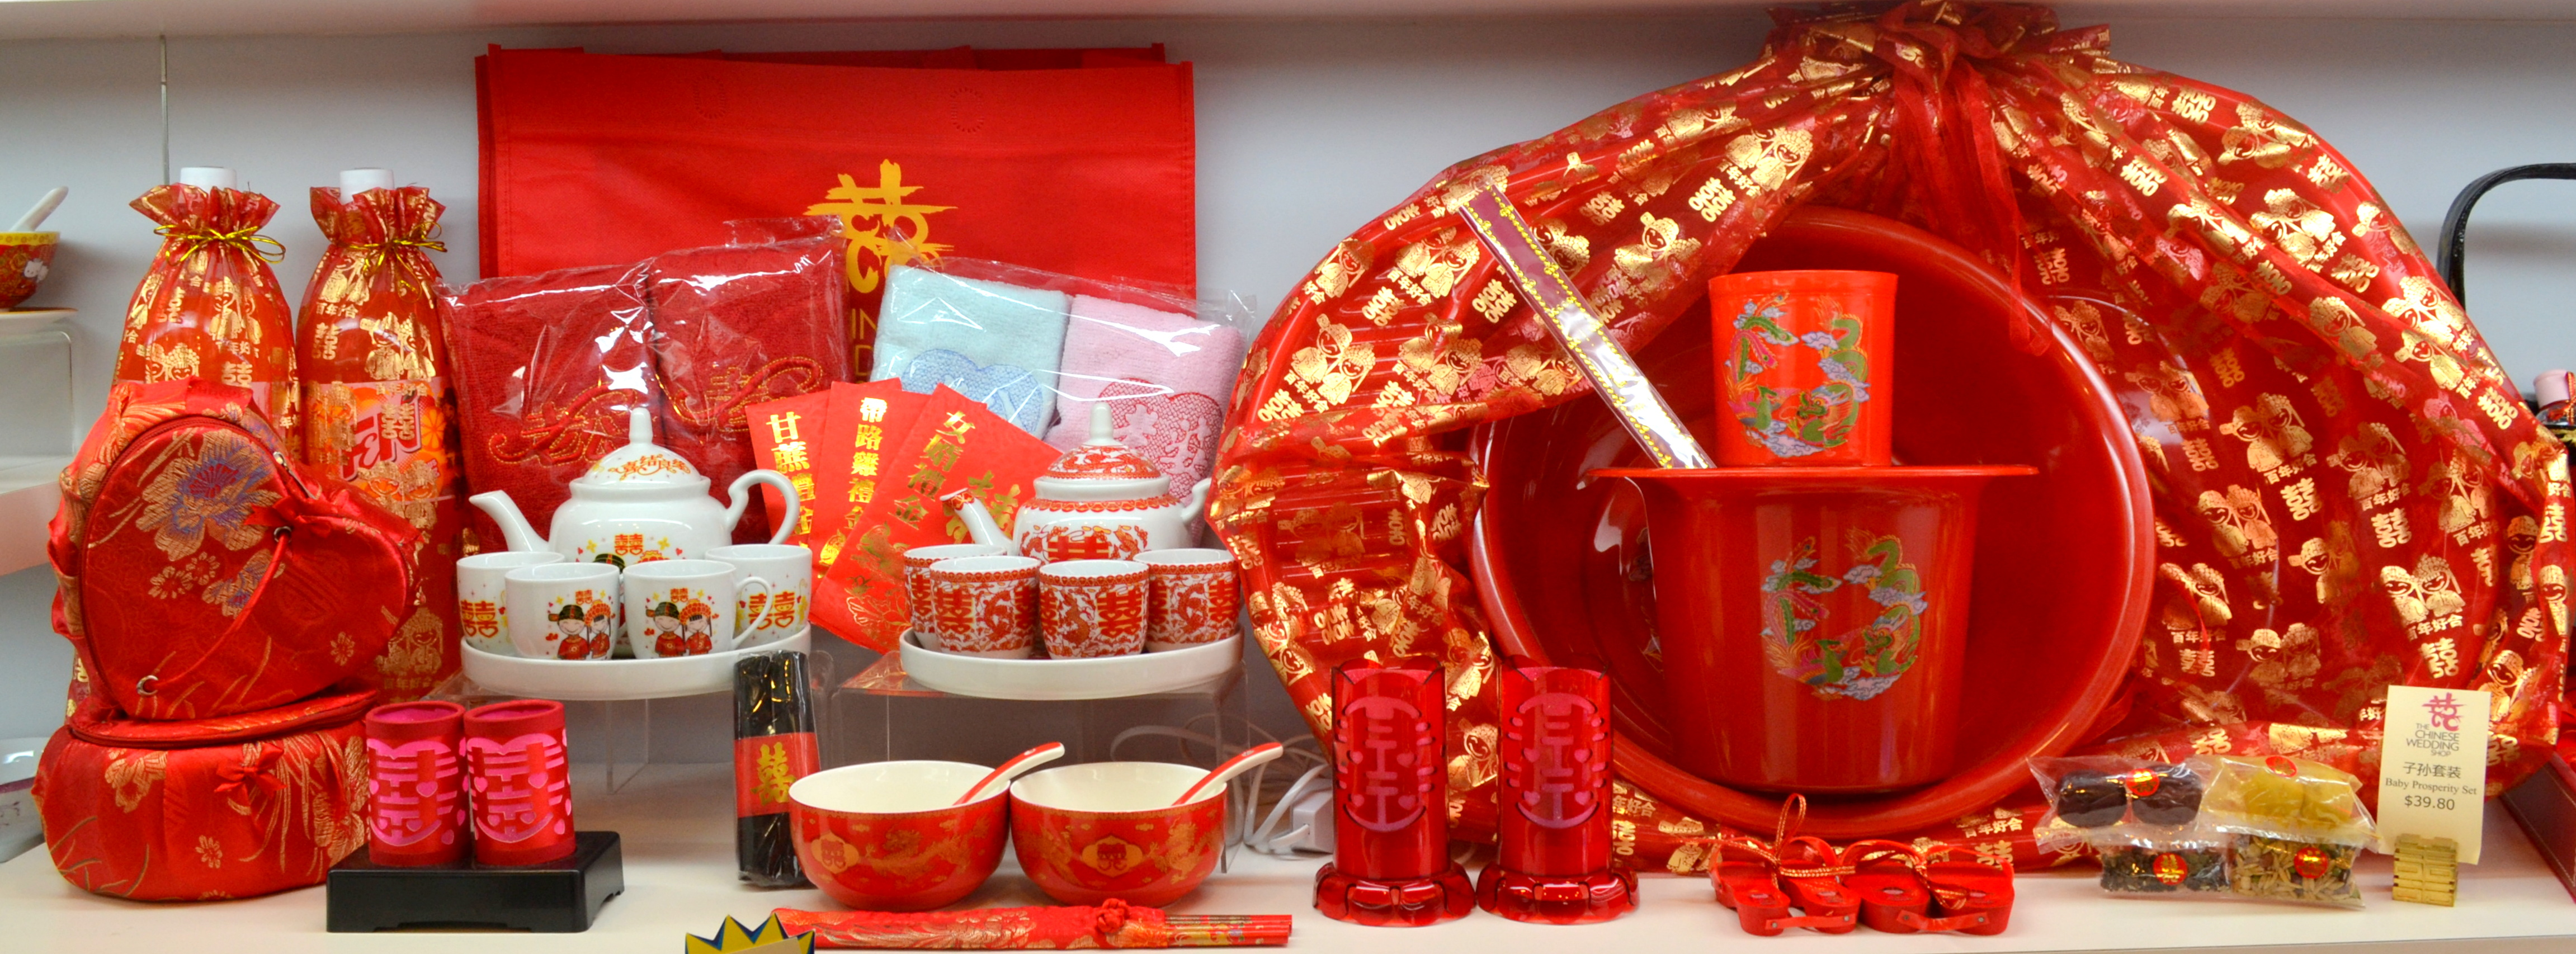 Chinese Wedding Gift Traditions: Prepare For Your Chinese Customary Wedding At The Chinese